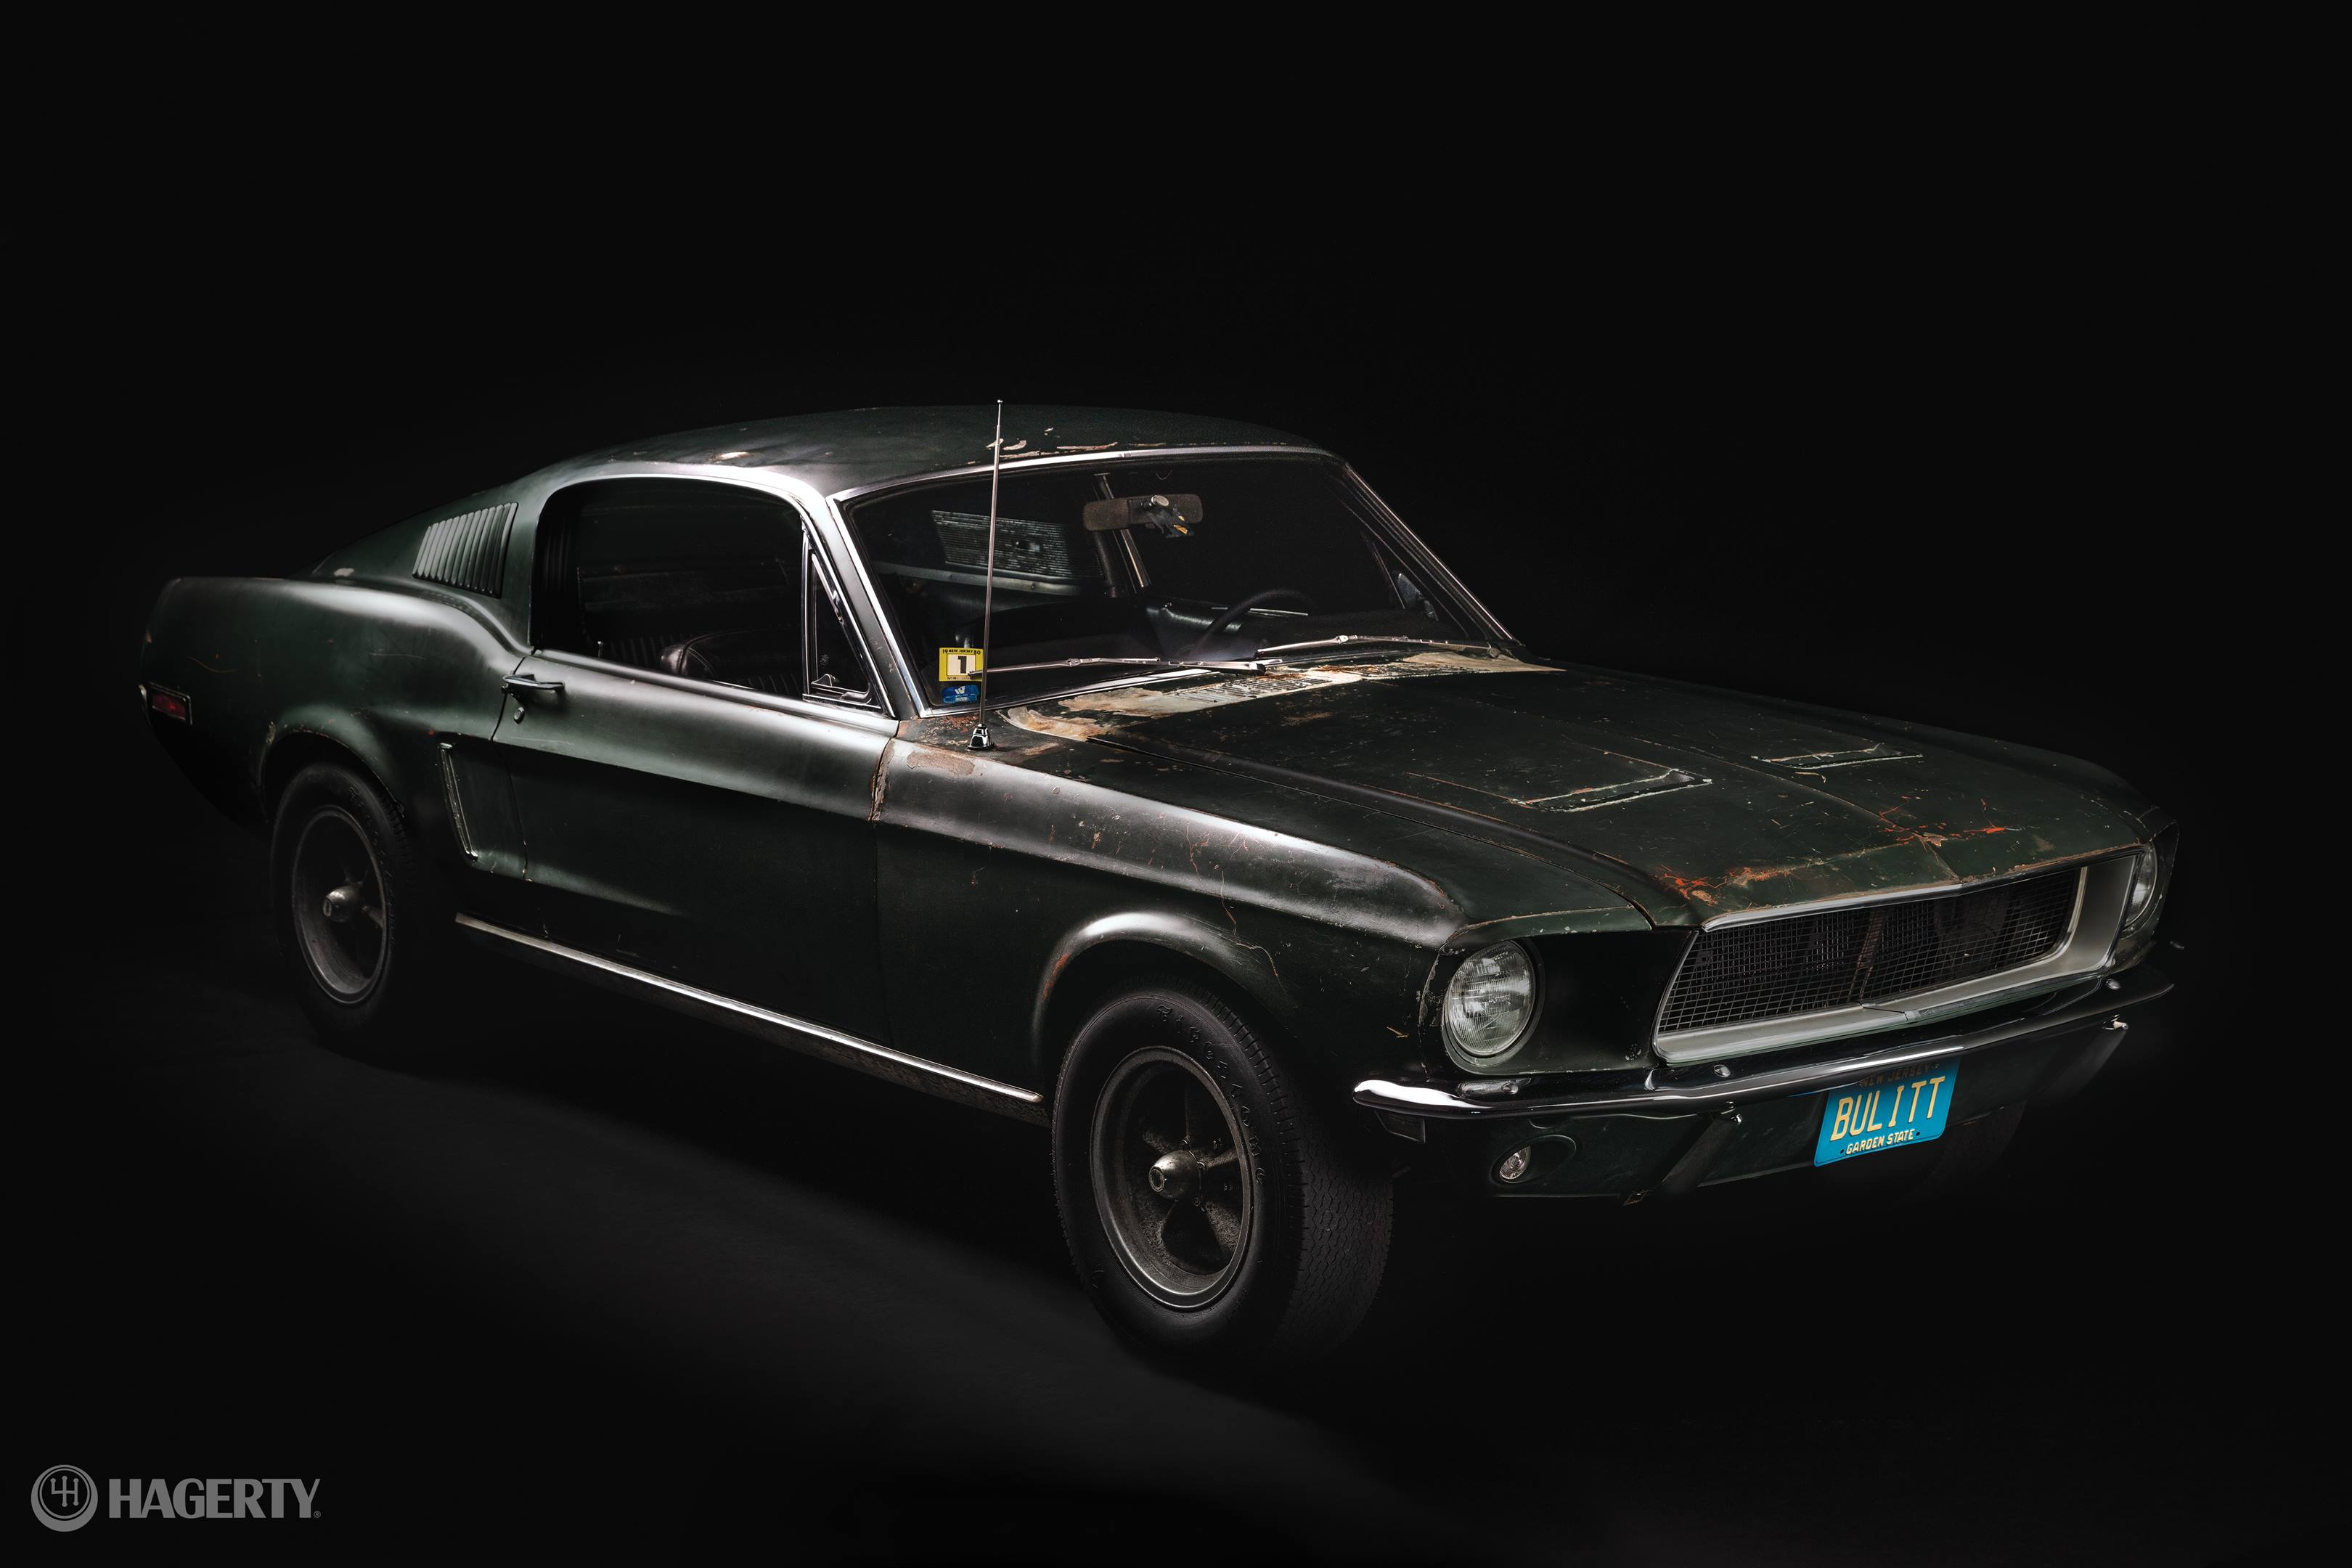 In its studio in Allentown, Pennsylvania, the Historic Vehicle Association exhaustively documented the Bullitt Mustang. The resulting report will be preserved in the Library of Congress, ensuring future generations will know the significance of this car.